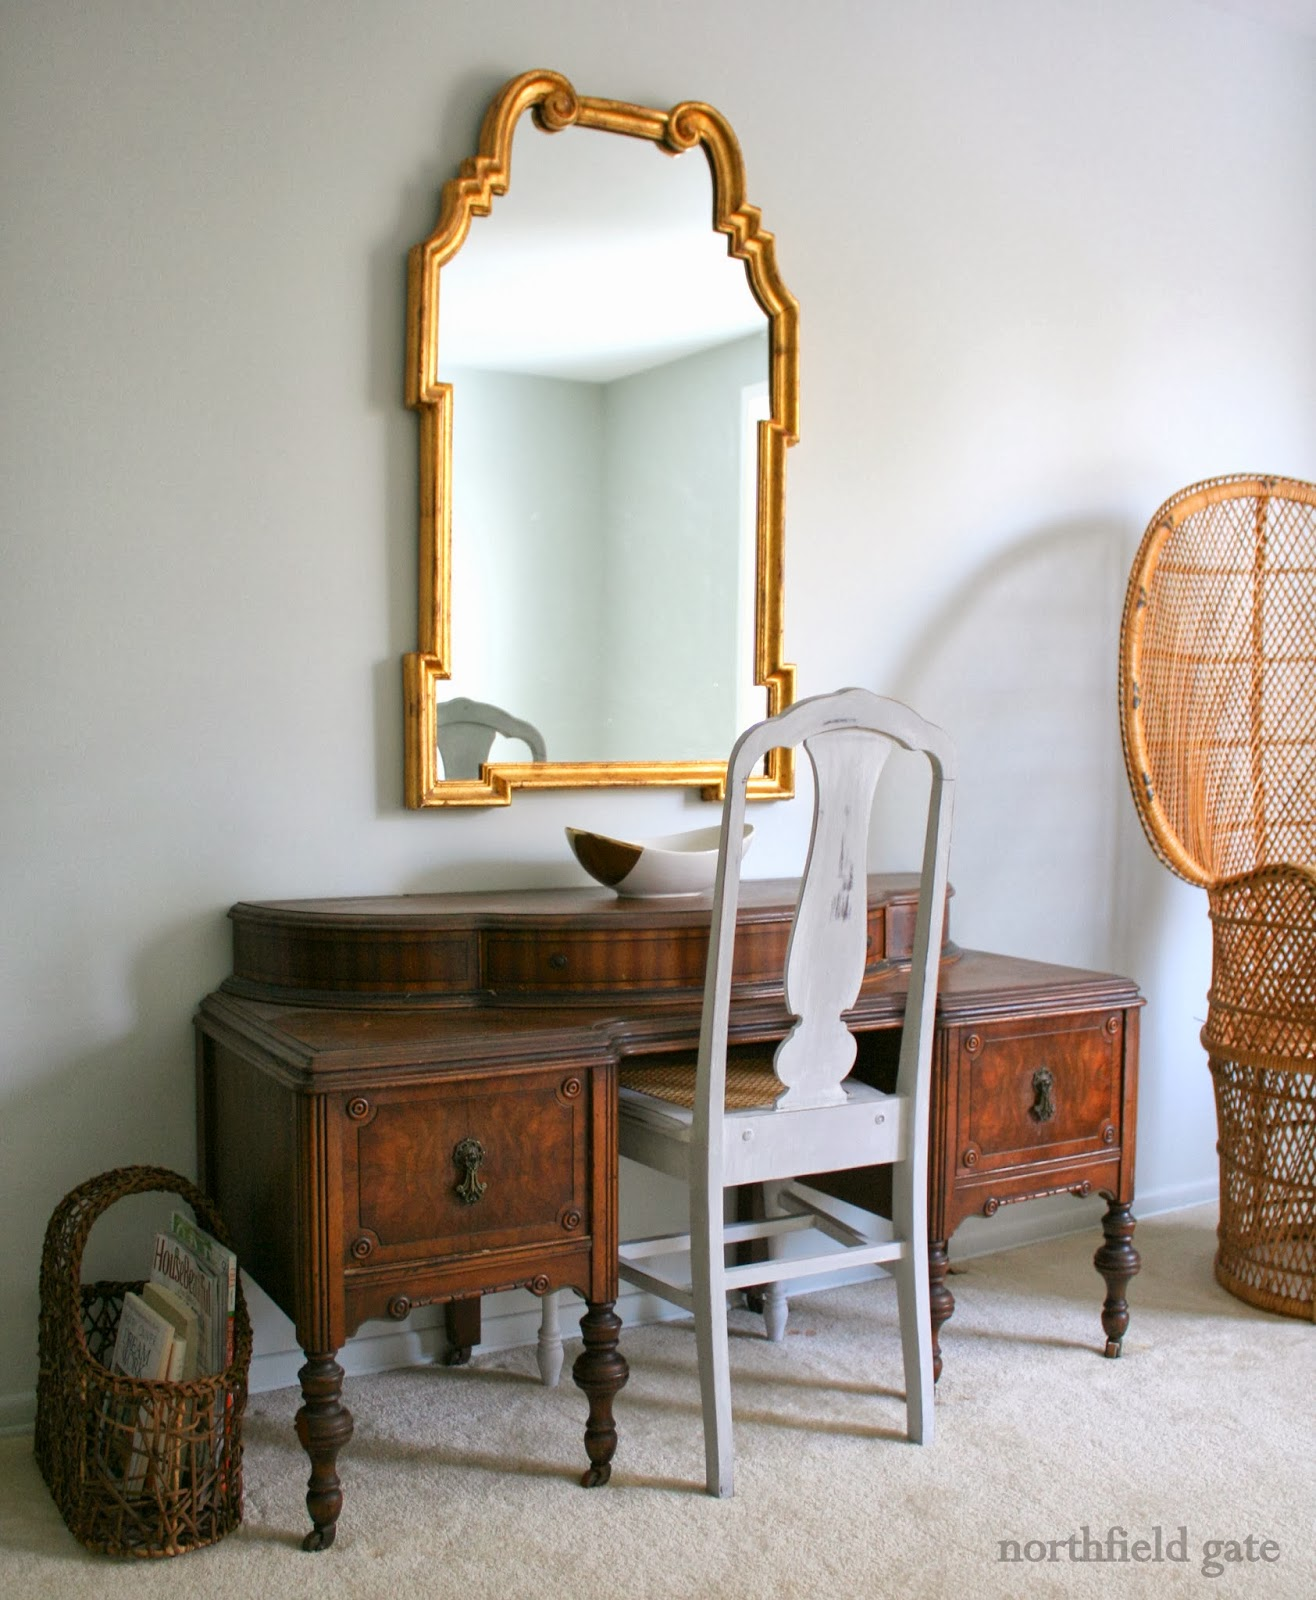 Antique commode chair - I Think The Rattan Chair Is Providing The Much Needed Texture In This Picture I Actually Moved The Chair Closer To The Commode When I Took The Picture So